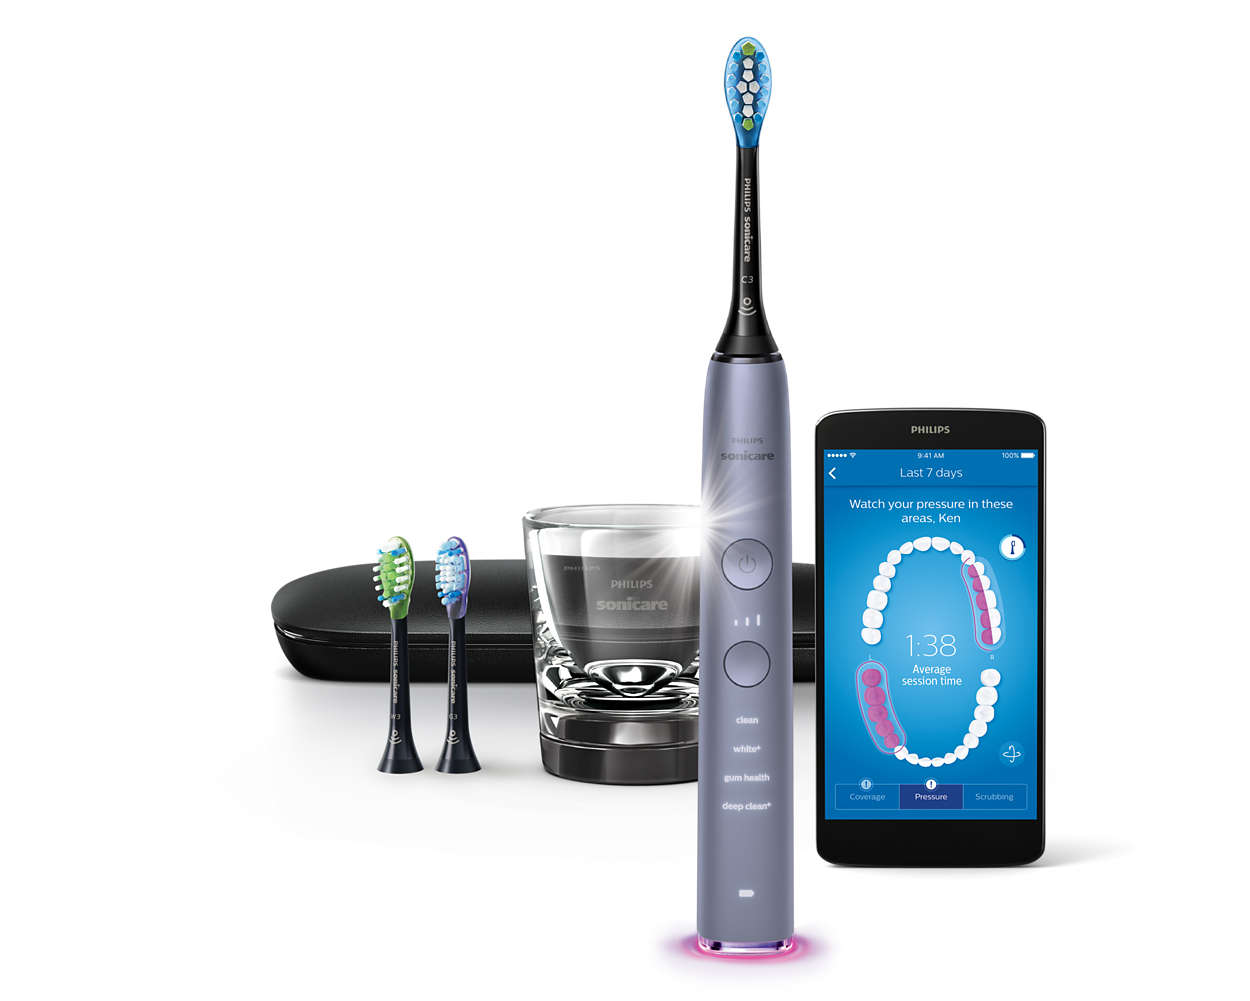 diamondclean smart sonic electric toothbrush with app. Black Bedroom Furniture Sets. Home Design Ideas